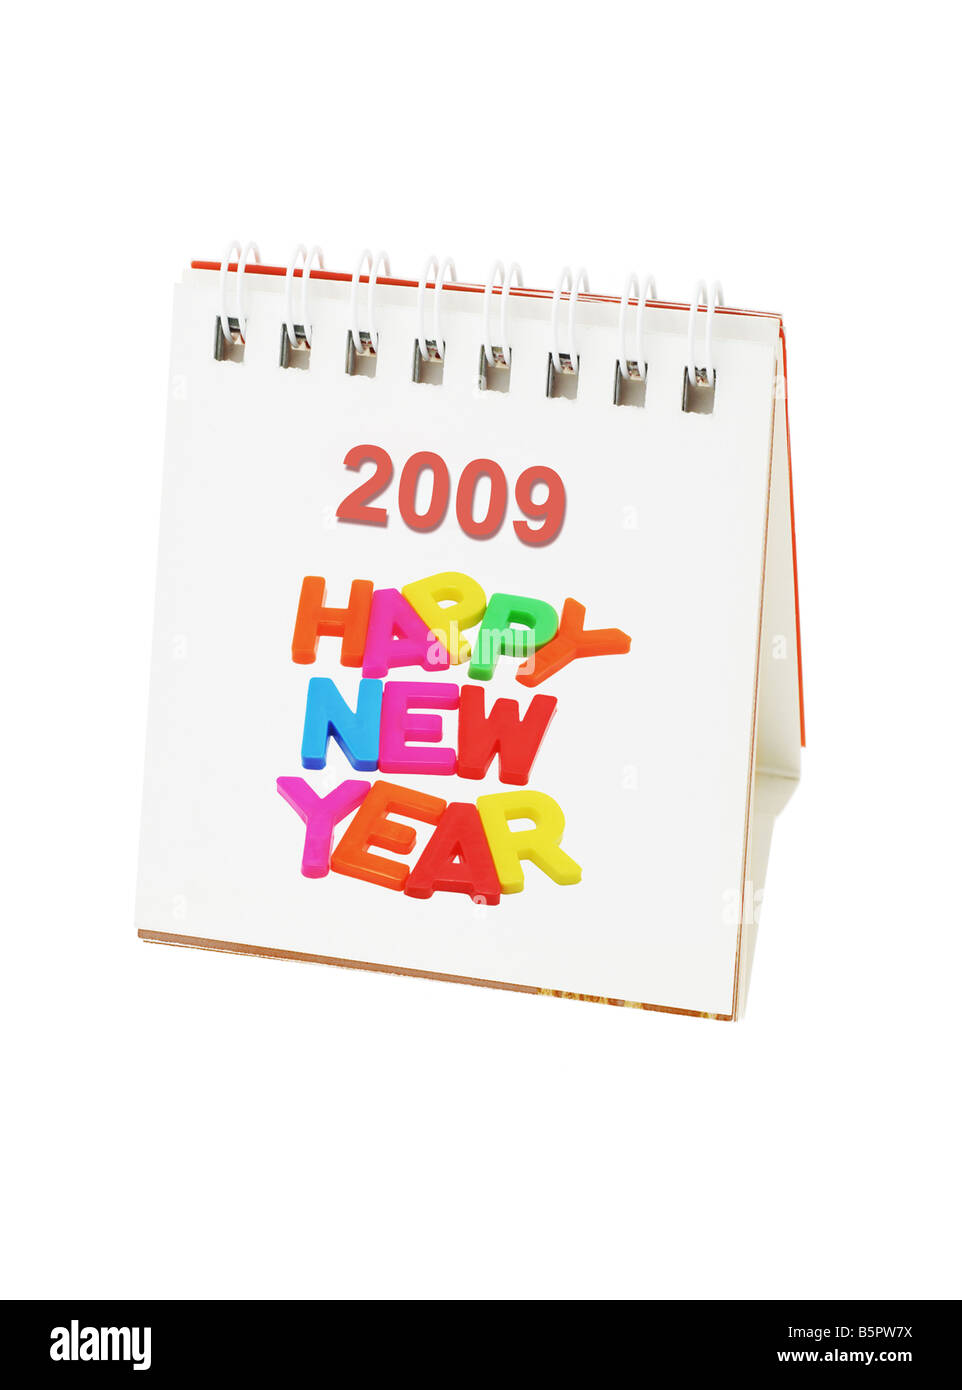 Desktop calendar showing 2009 Happy New Year Stock Photo